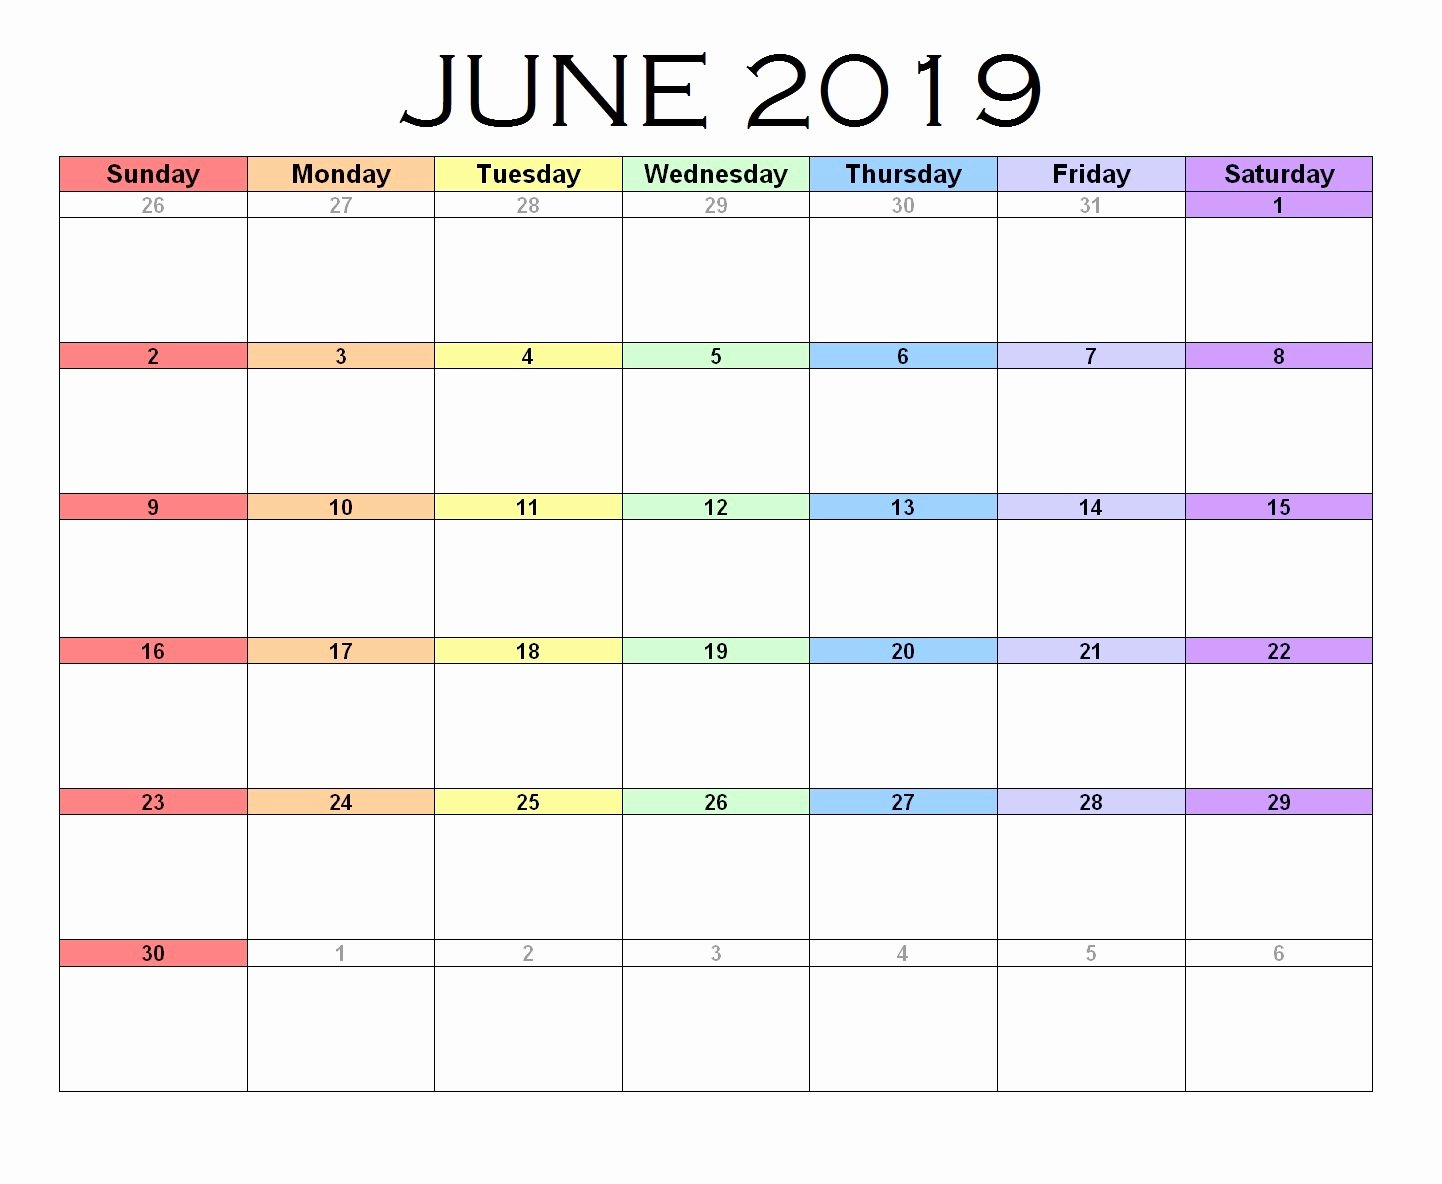 Excel Calendar 2019 Template Unique June 2019 Calendar Excel